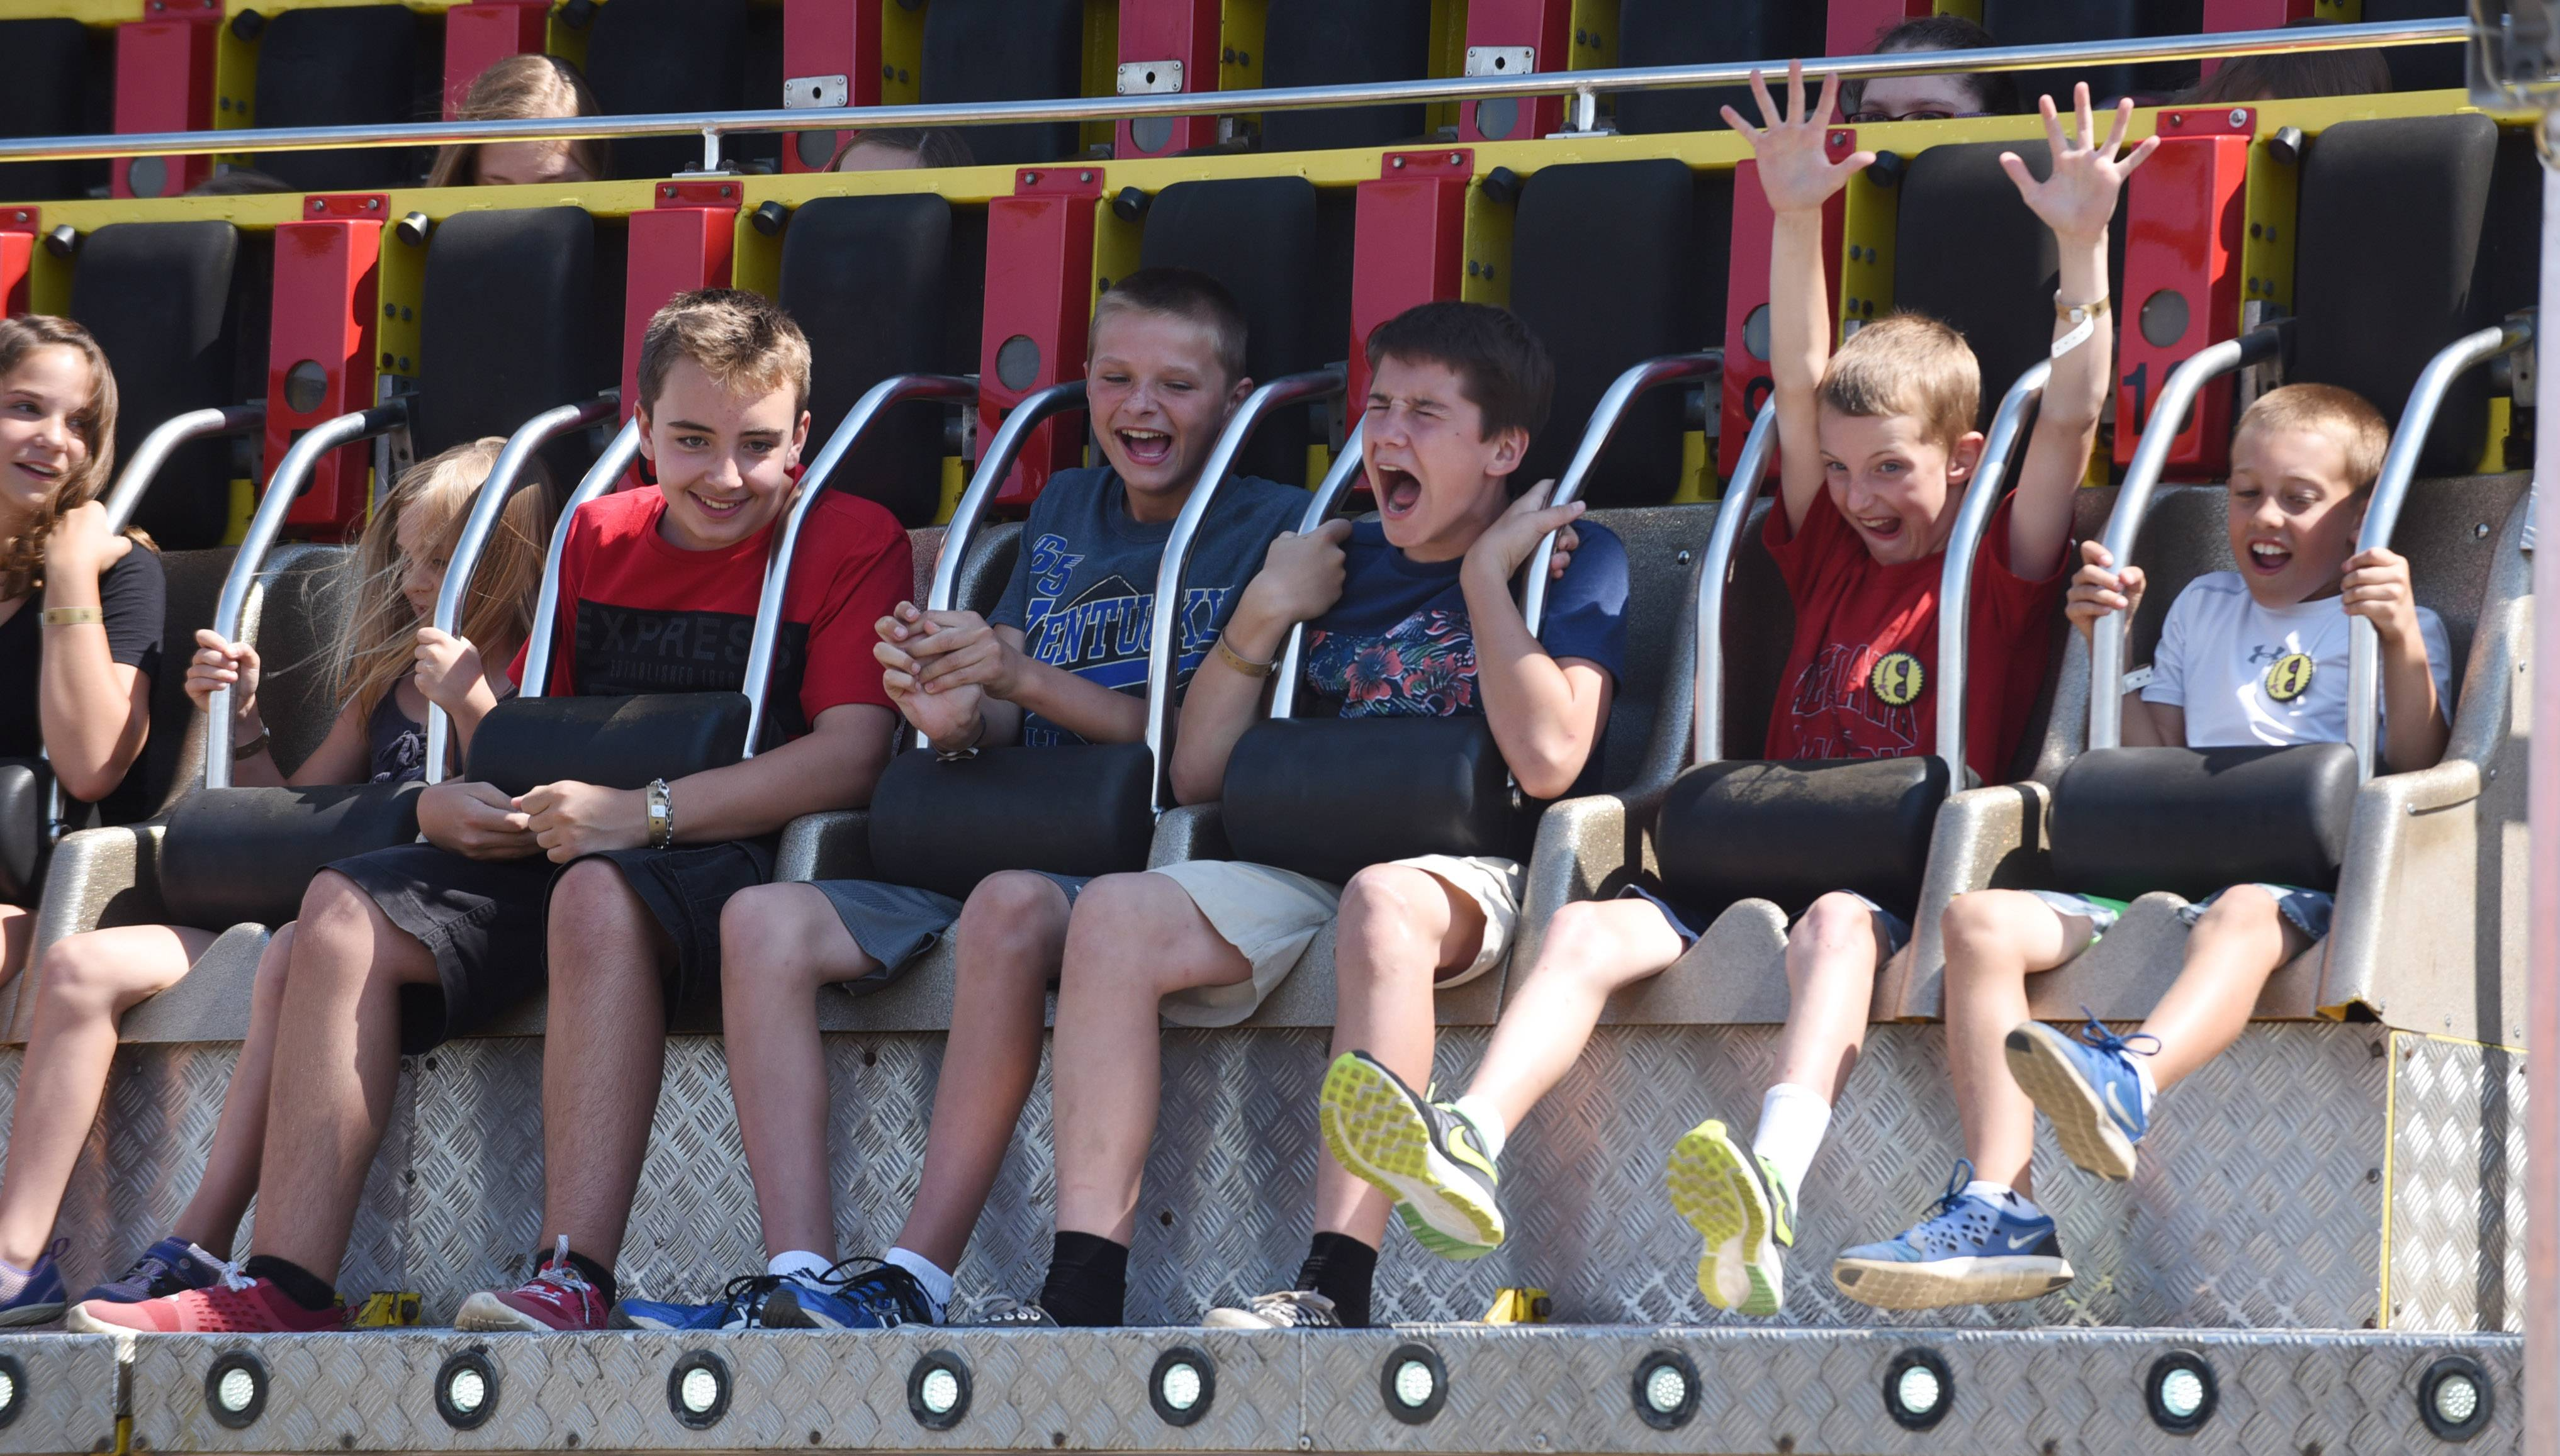 Kids enjoy a ride during Wauconda Fest at Cook Park in Wauconda Saturday.